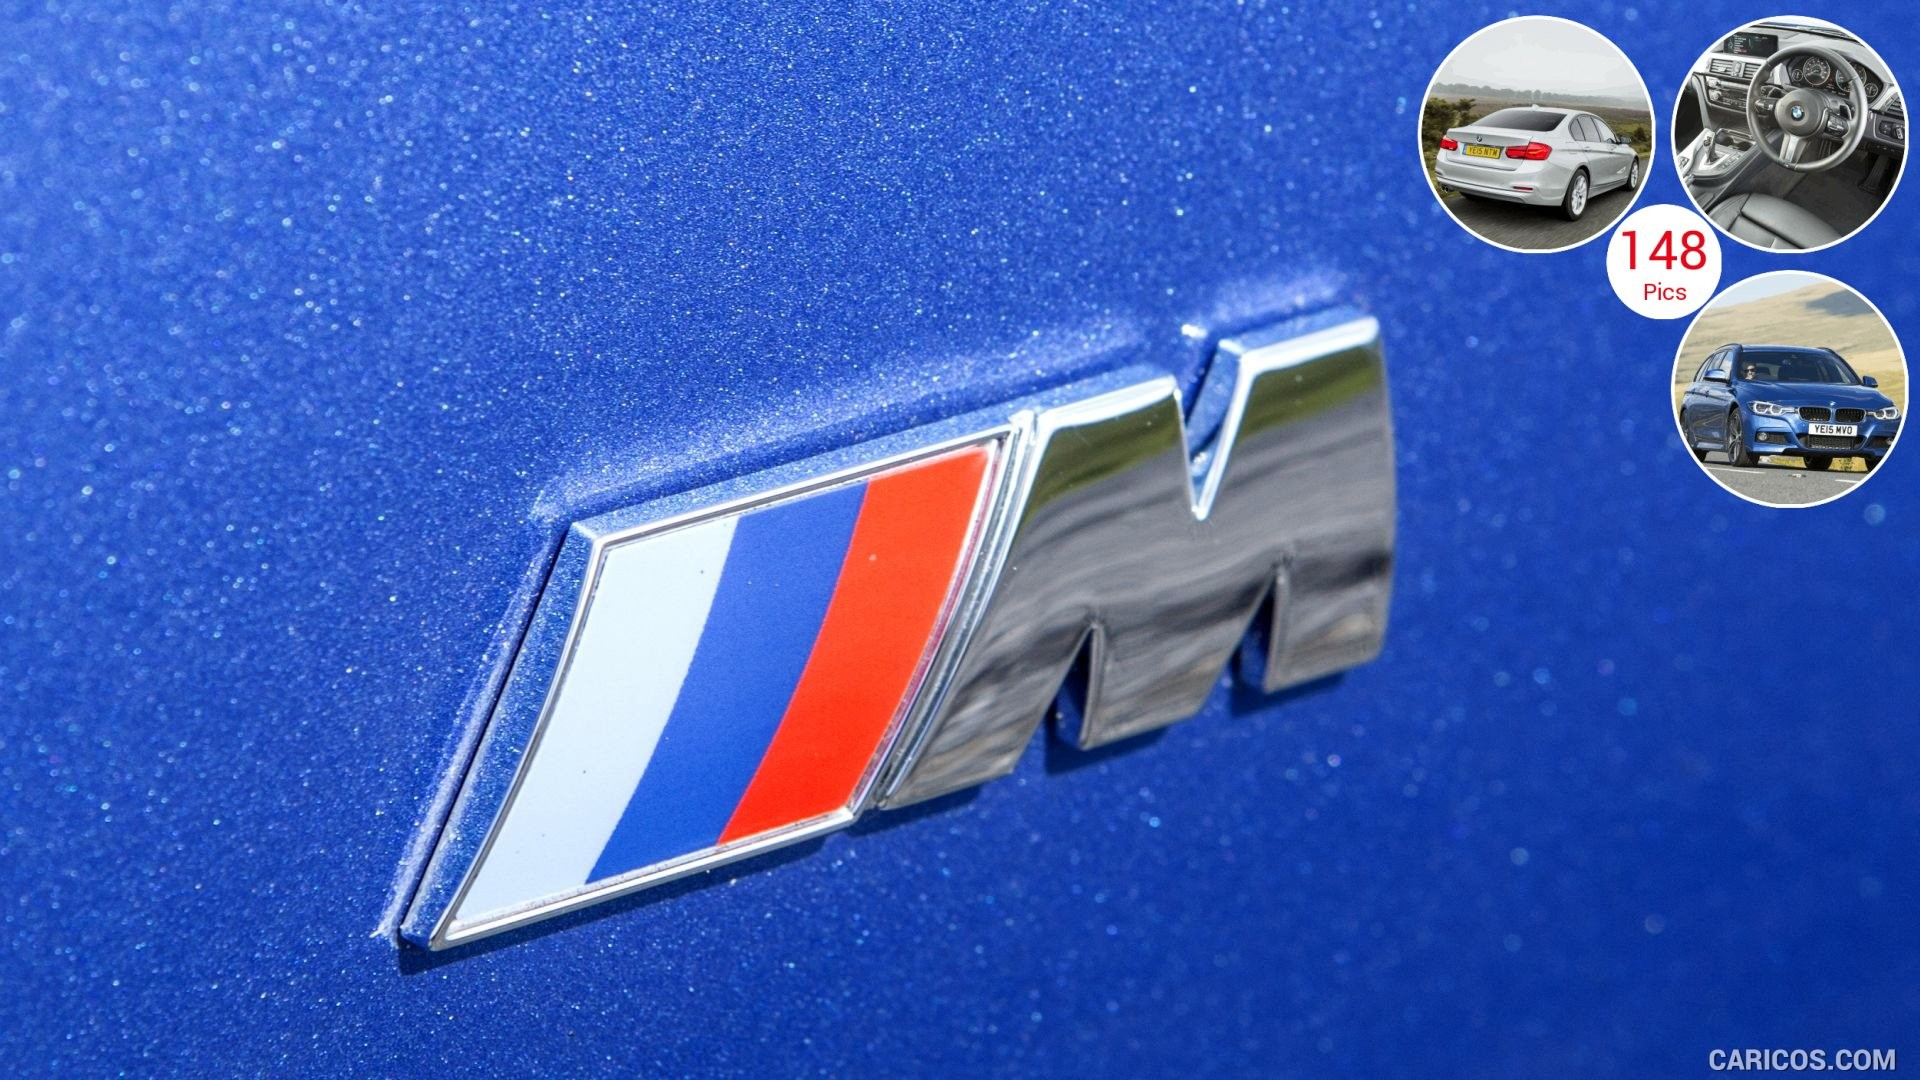 M Sport Wallpaper Iphone: BMW Logo Wallpapers (65+ Images